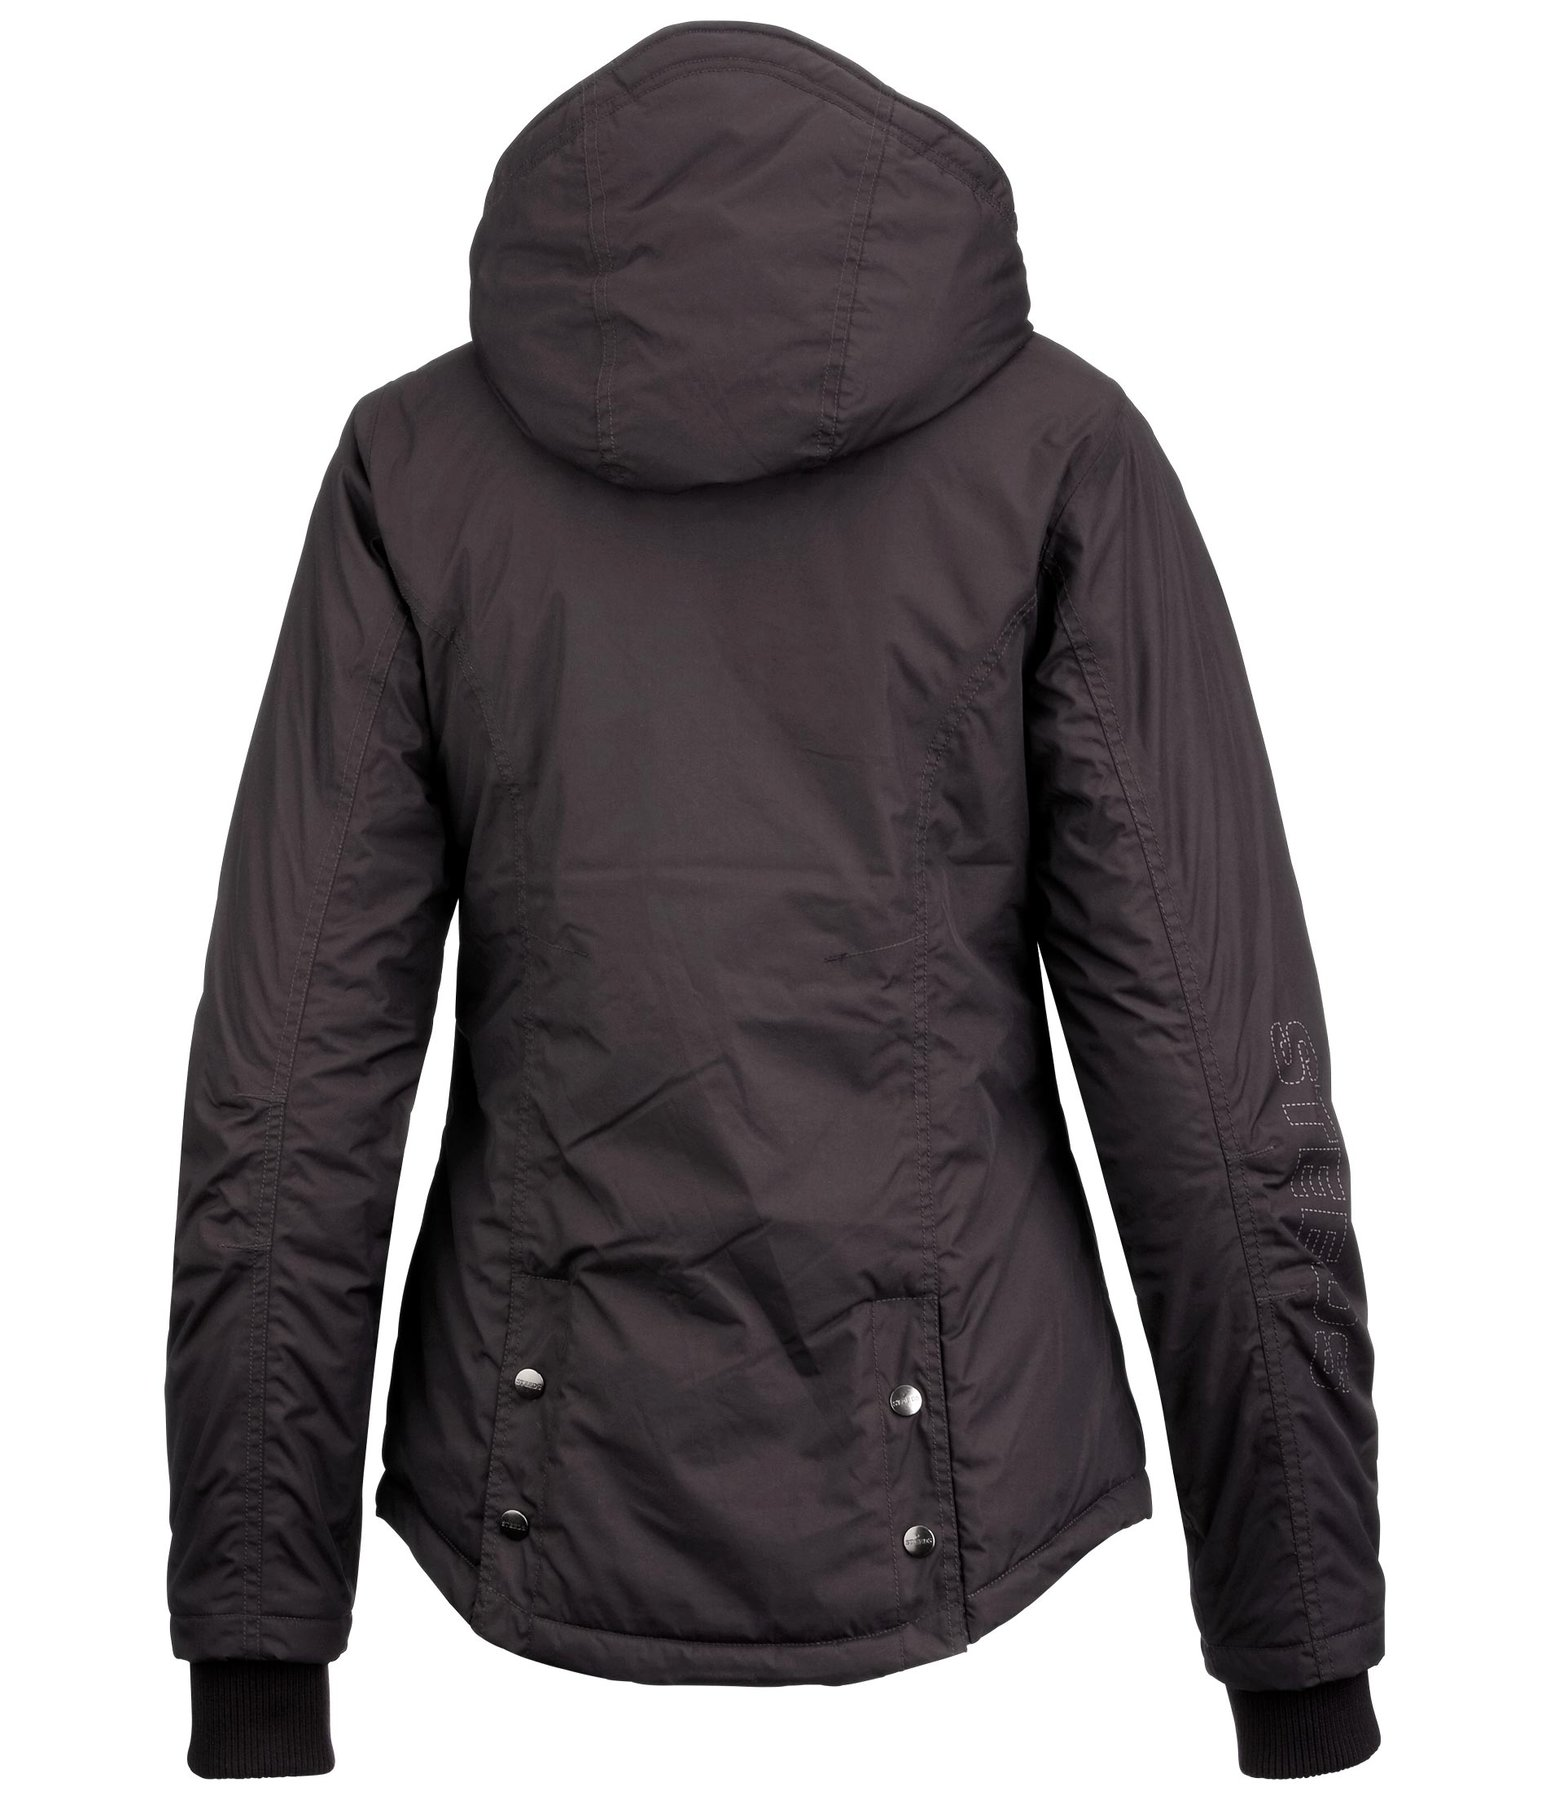 Hooded Riding Jacket Iceland Winter Riding Jackets